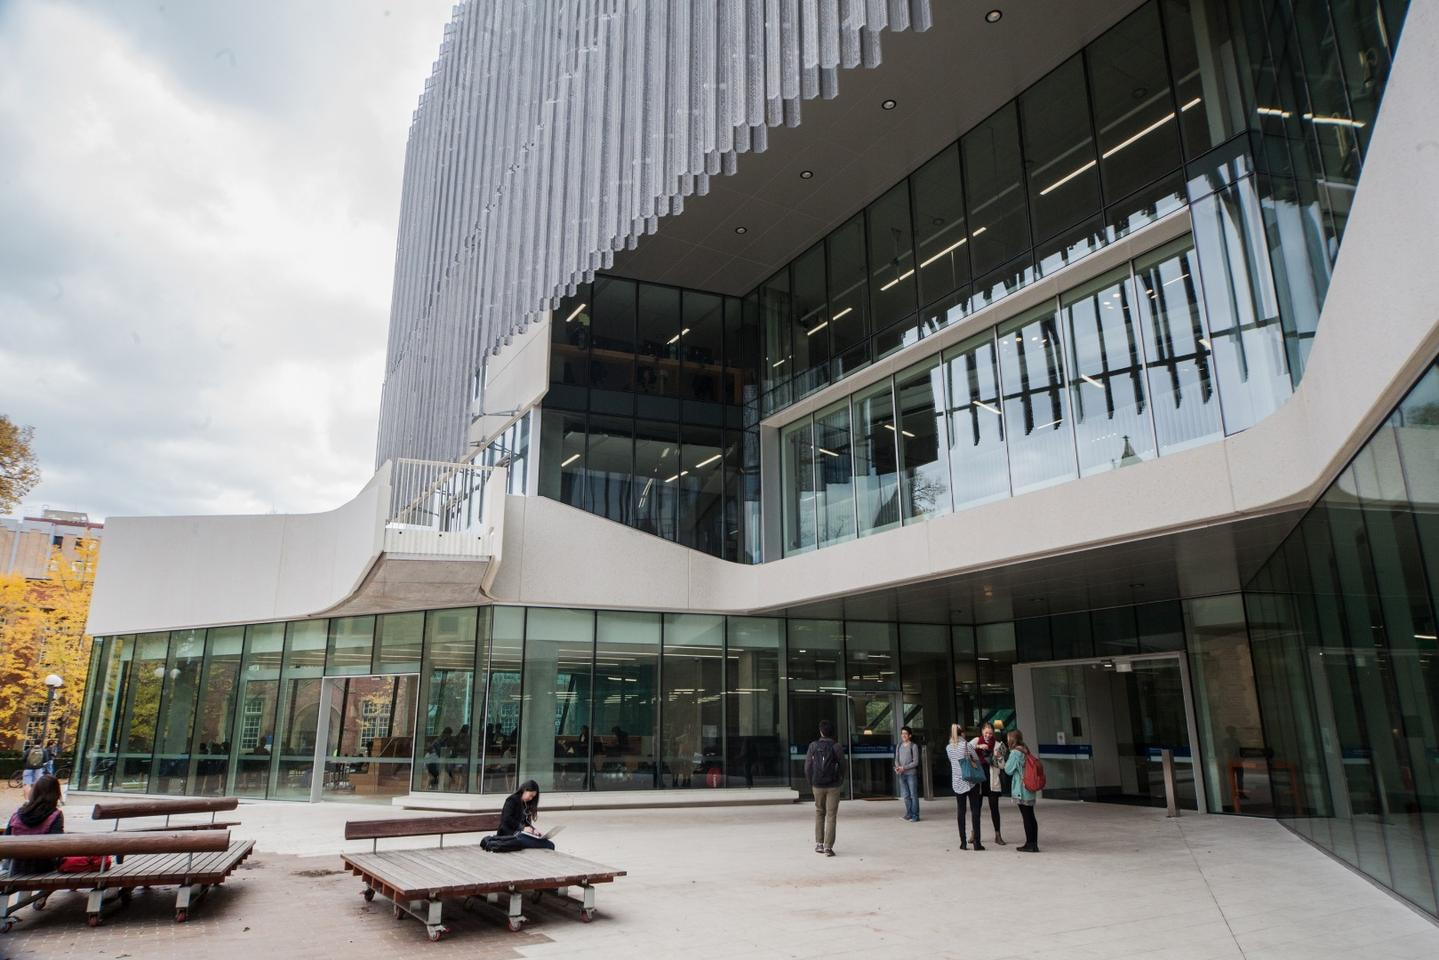 On the ground floor of the building, a thoroughfare handles foot traffic from all across the university